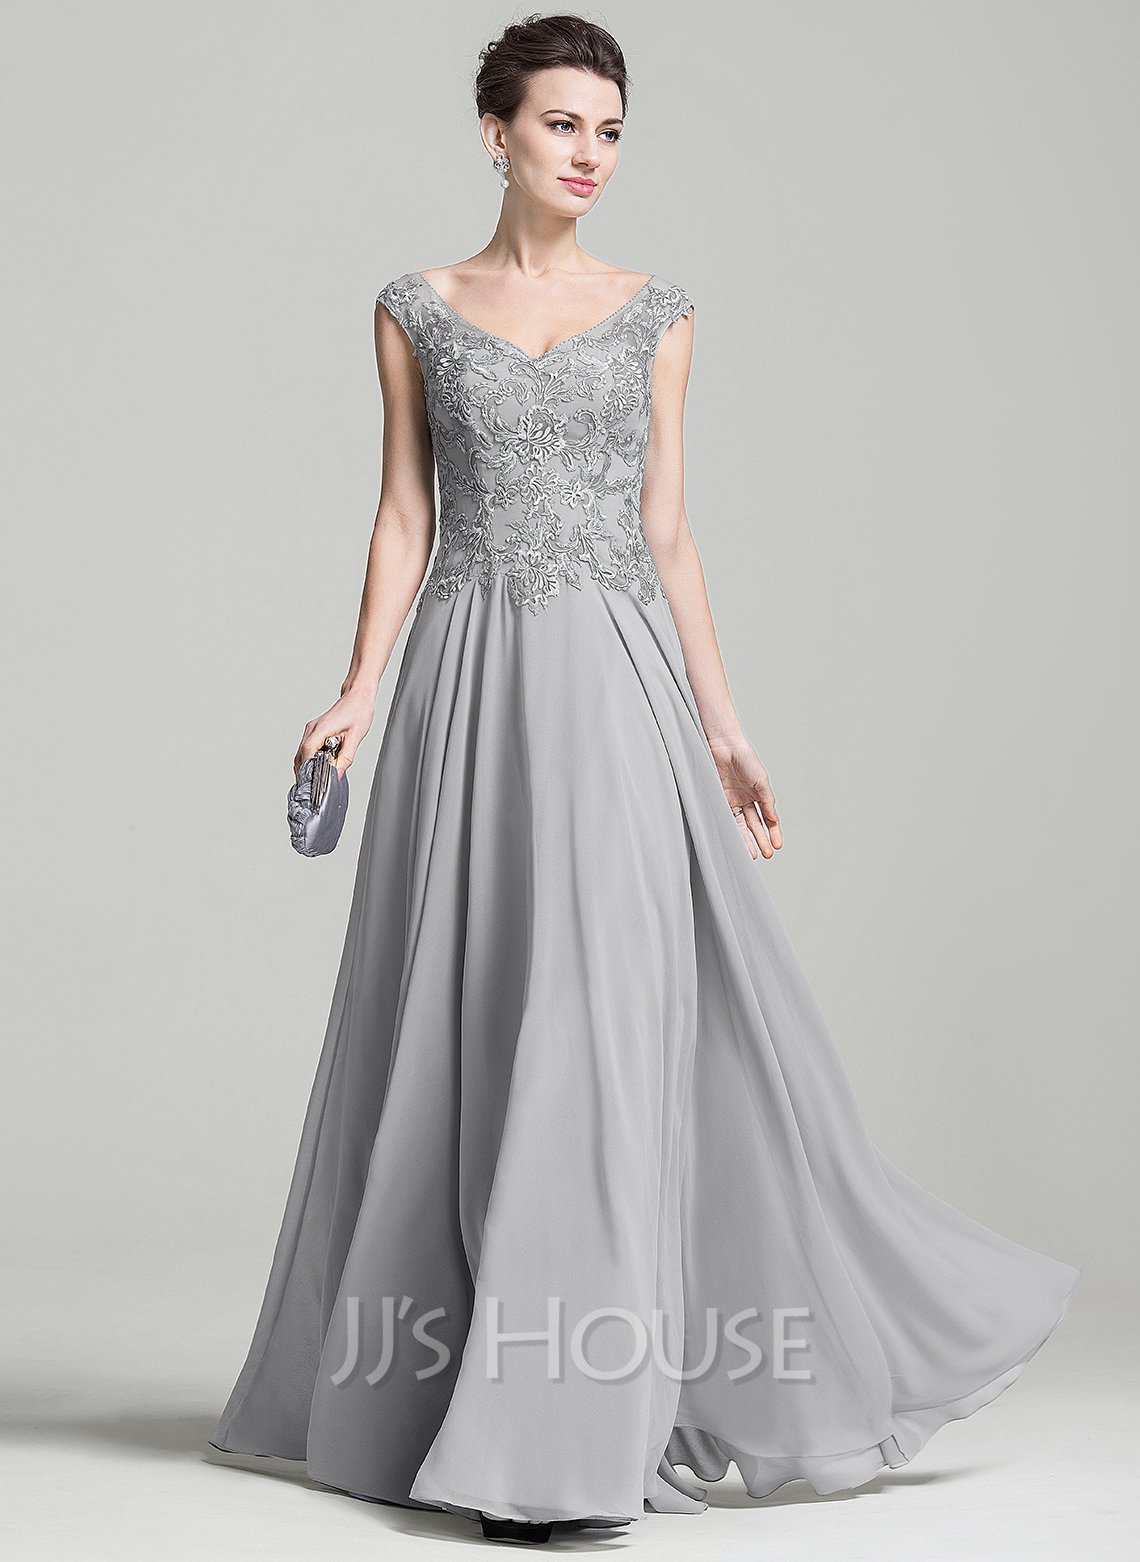 e5f3c2aef58 A-Line Princess V-neck Floor-Length Chiffon Mother of the Bride Dress With  Appliques Lace  74209